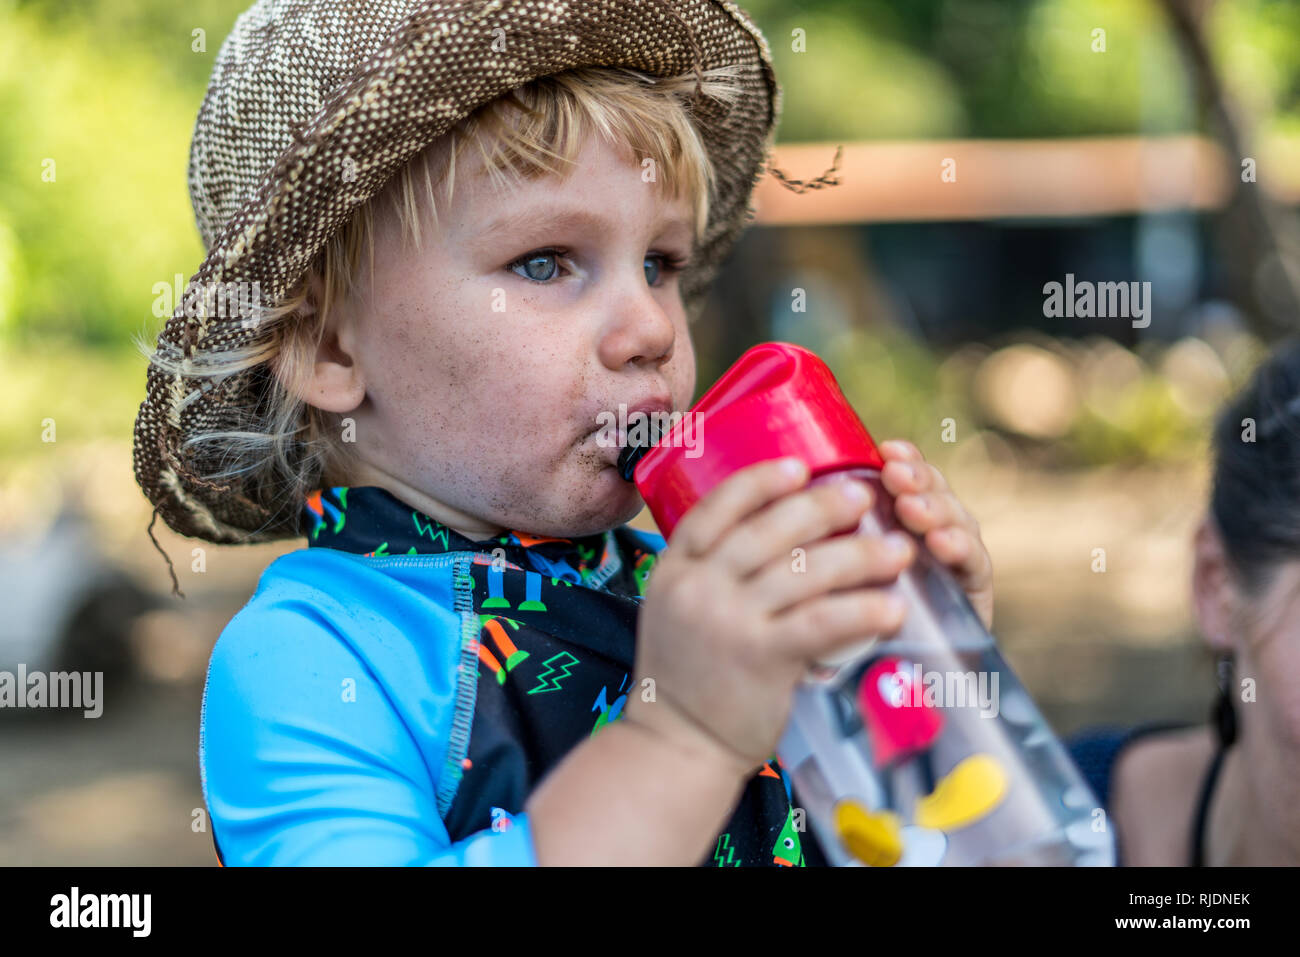 A portrait of a 2 year old toddler intently drinking from his plastic water bottle. - Stock Image